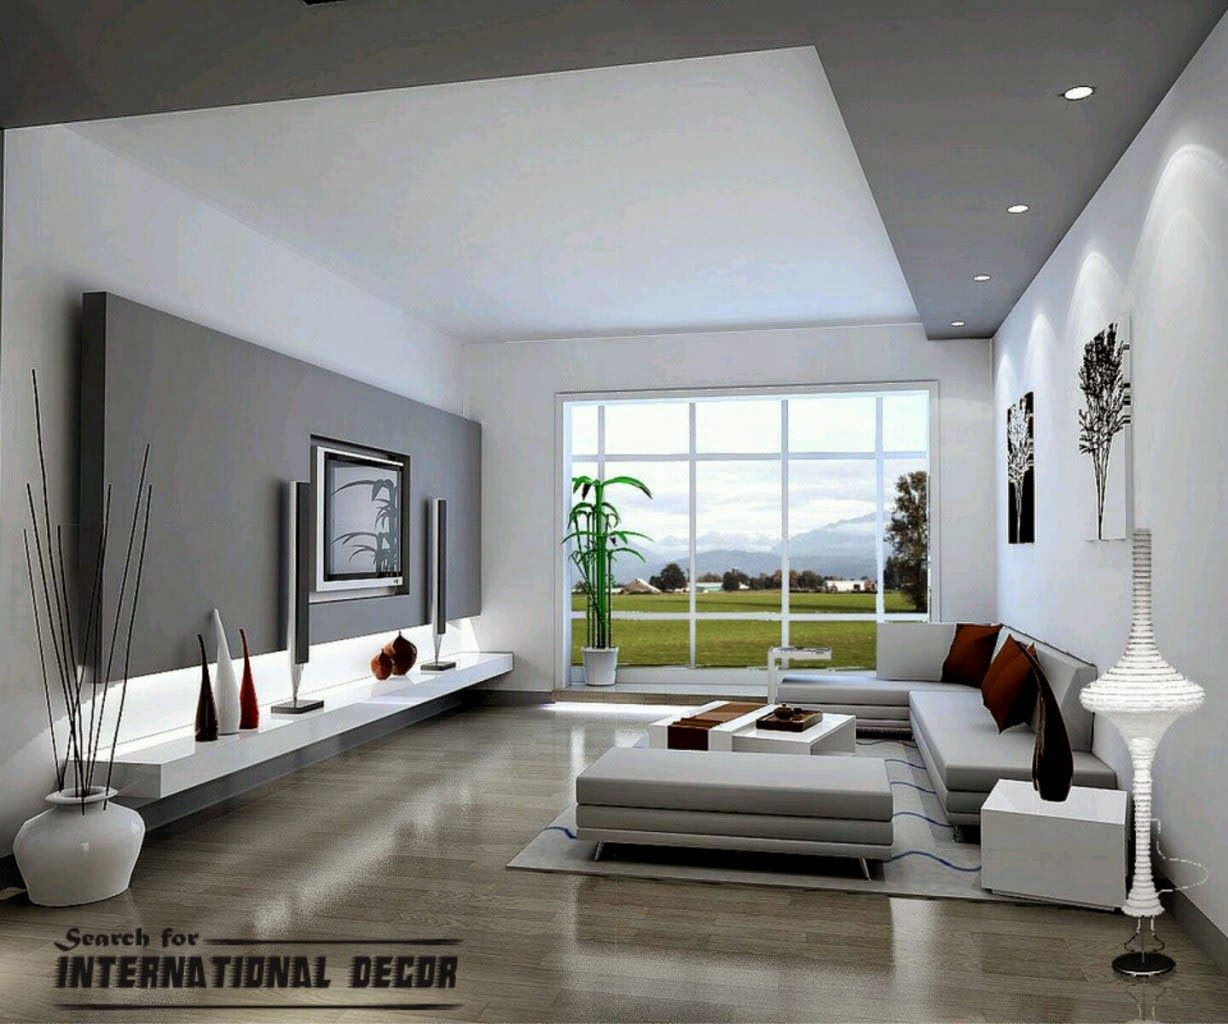 Modern Living Room Decor And Design. Paint Part Of Ceiling